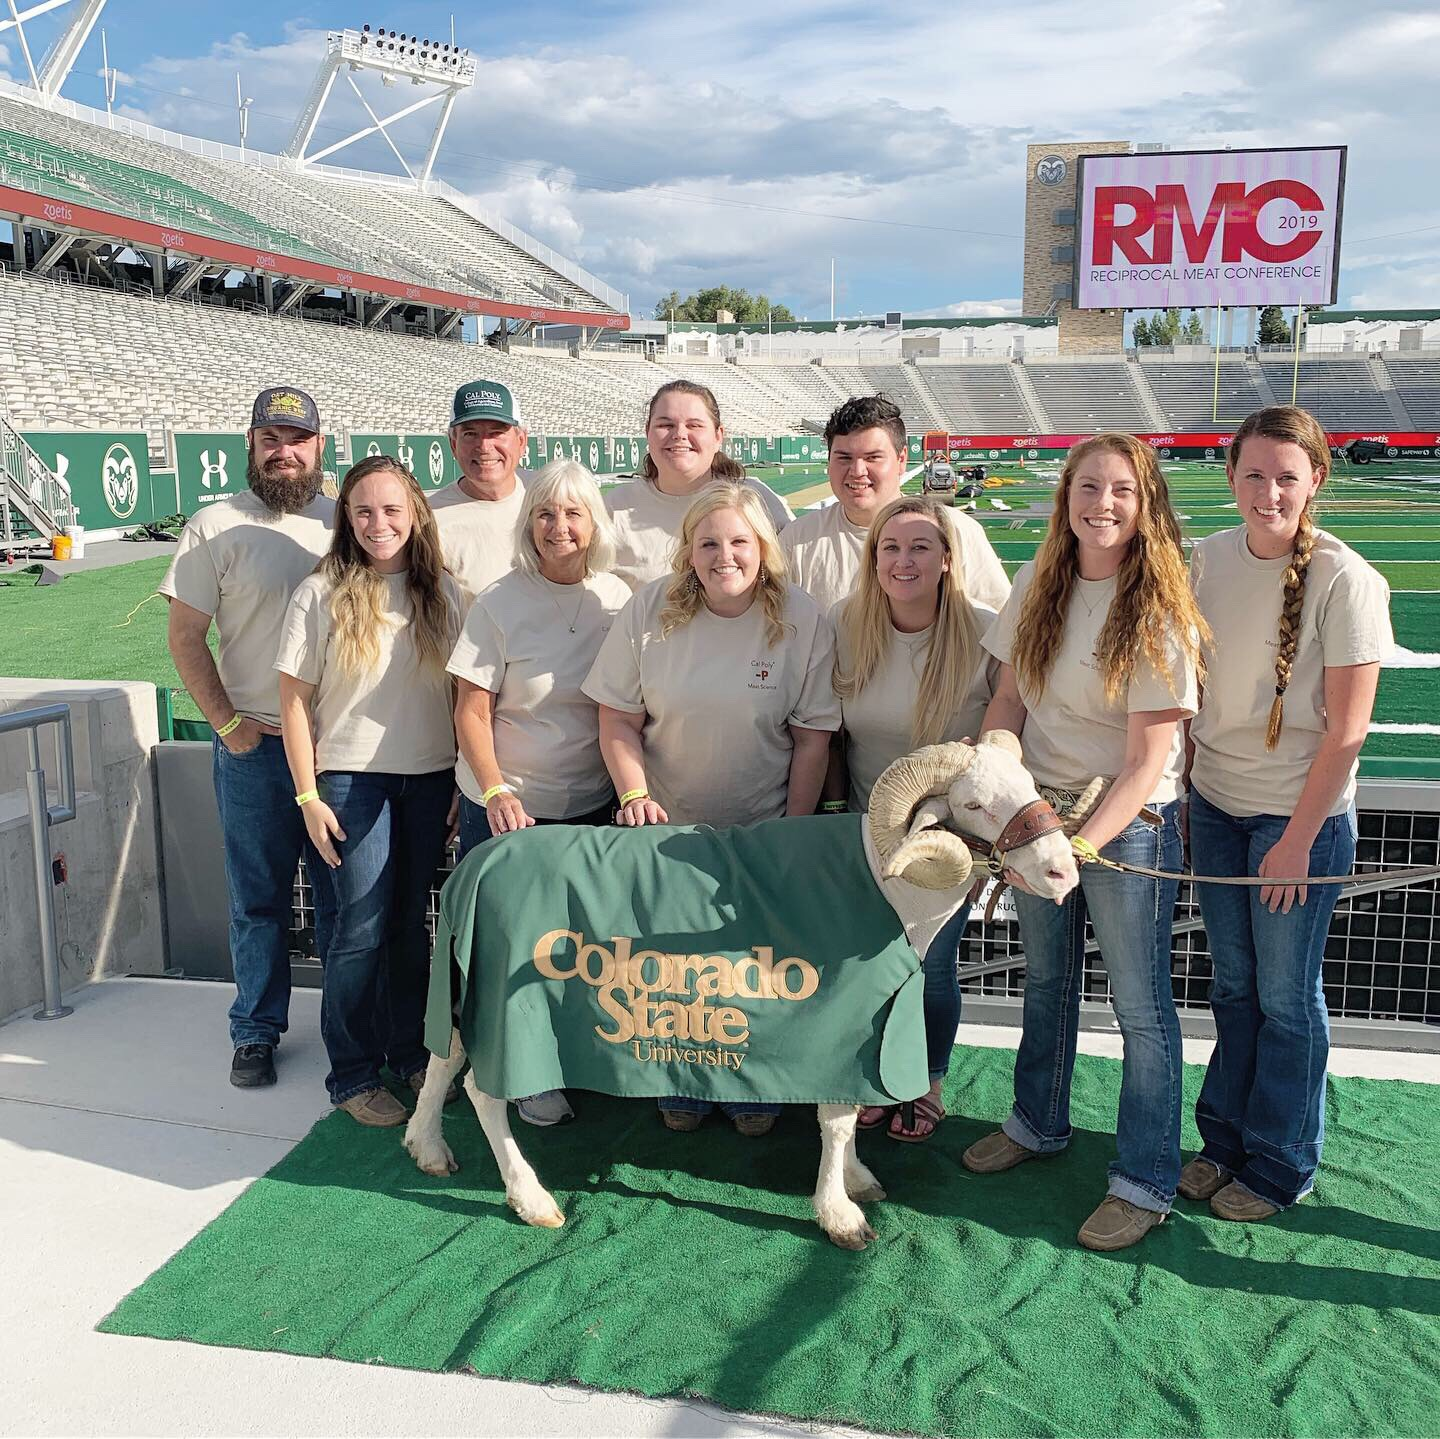 Cal Poly Team meets Cam the Ram at the Family Picnic in CSU's Football Stadium!